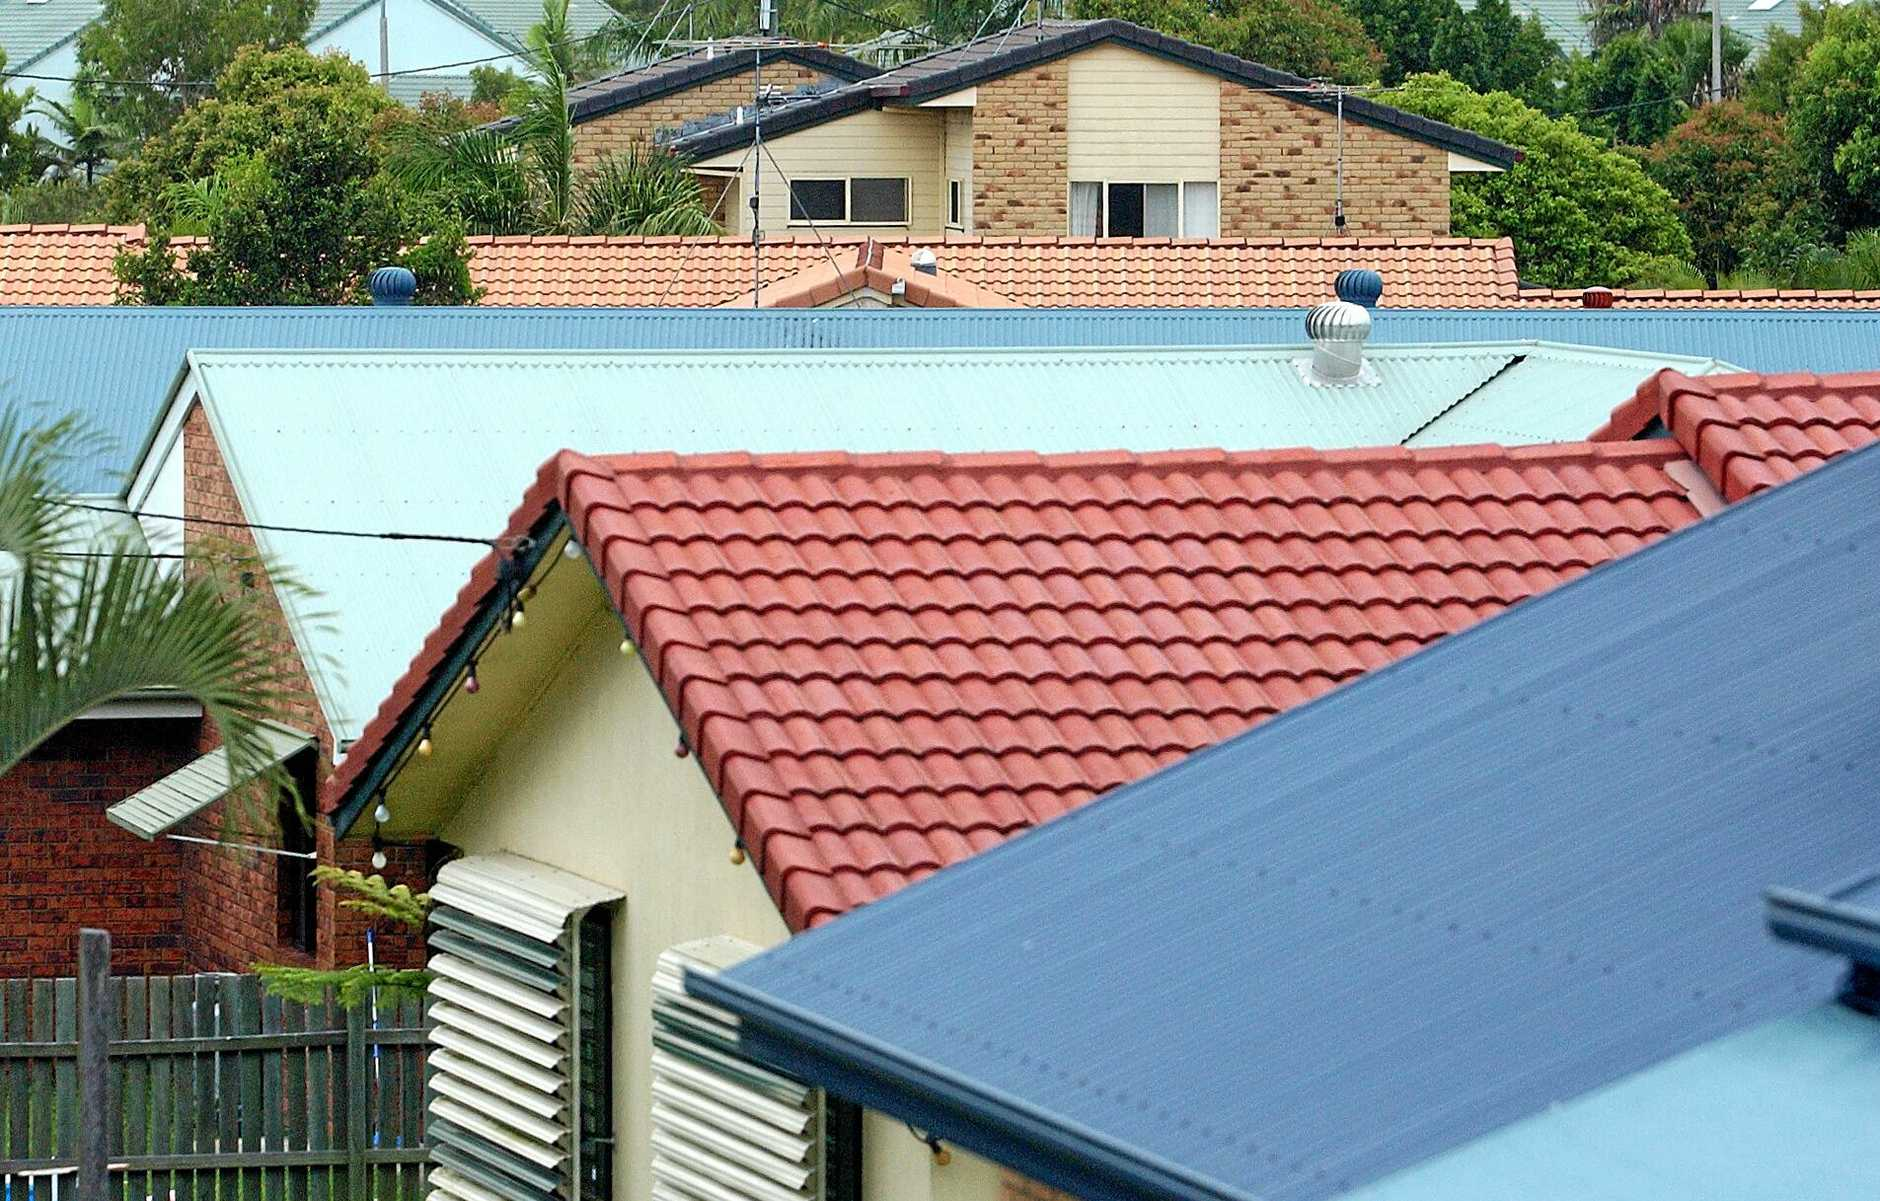 Suberban House Roofs Photo: Brett Wortman / Sunshine Coast Daily